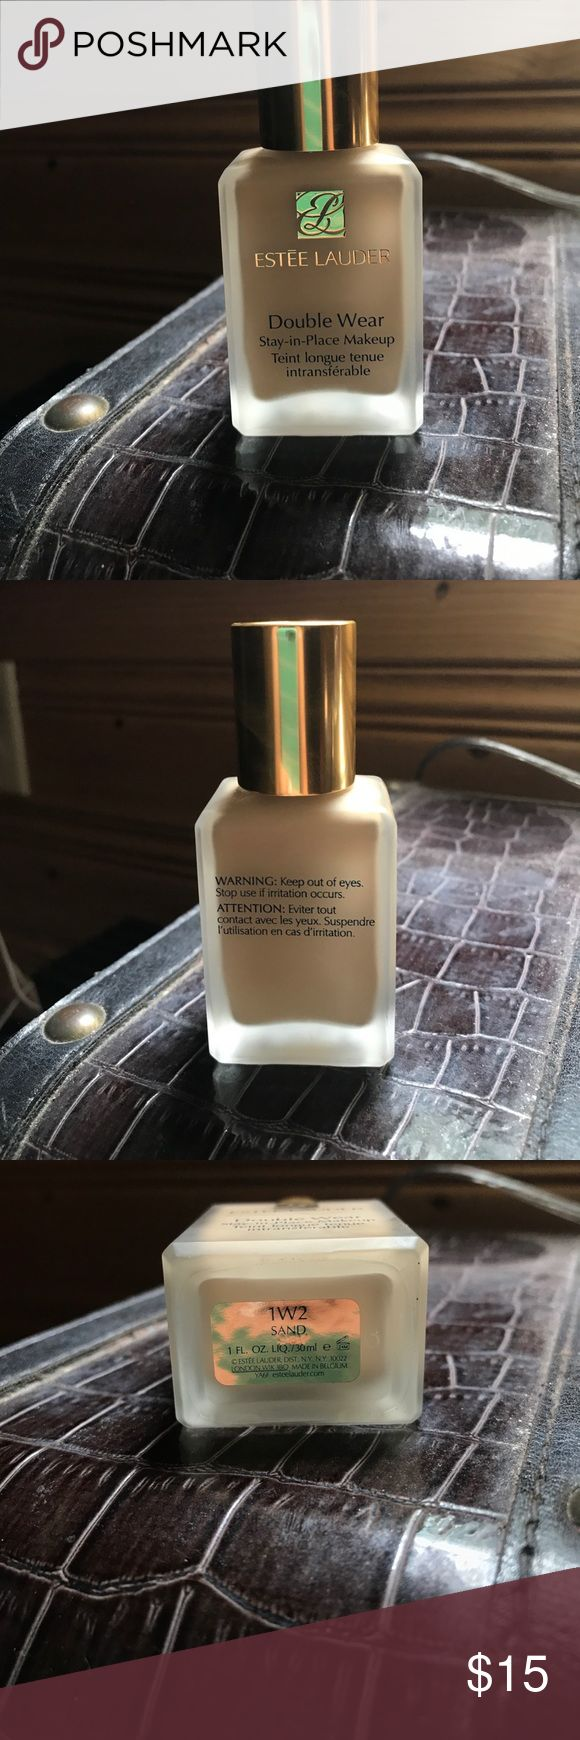 Estee Lauder double wear foundation (1W2 Sand) This foundation claims to be a 24-hour, flawless foundation that looks fresh through heat humidity and activity. It gives a natural looking medium coverage while still being light weight and oil free. Shade:1W2 Sand Estee Lauder Makeup Foundation